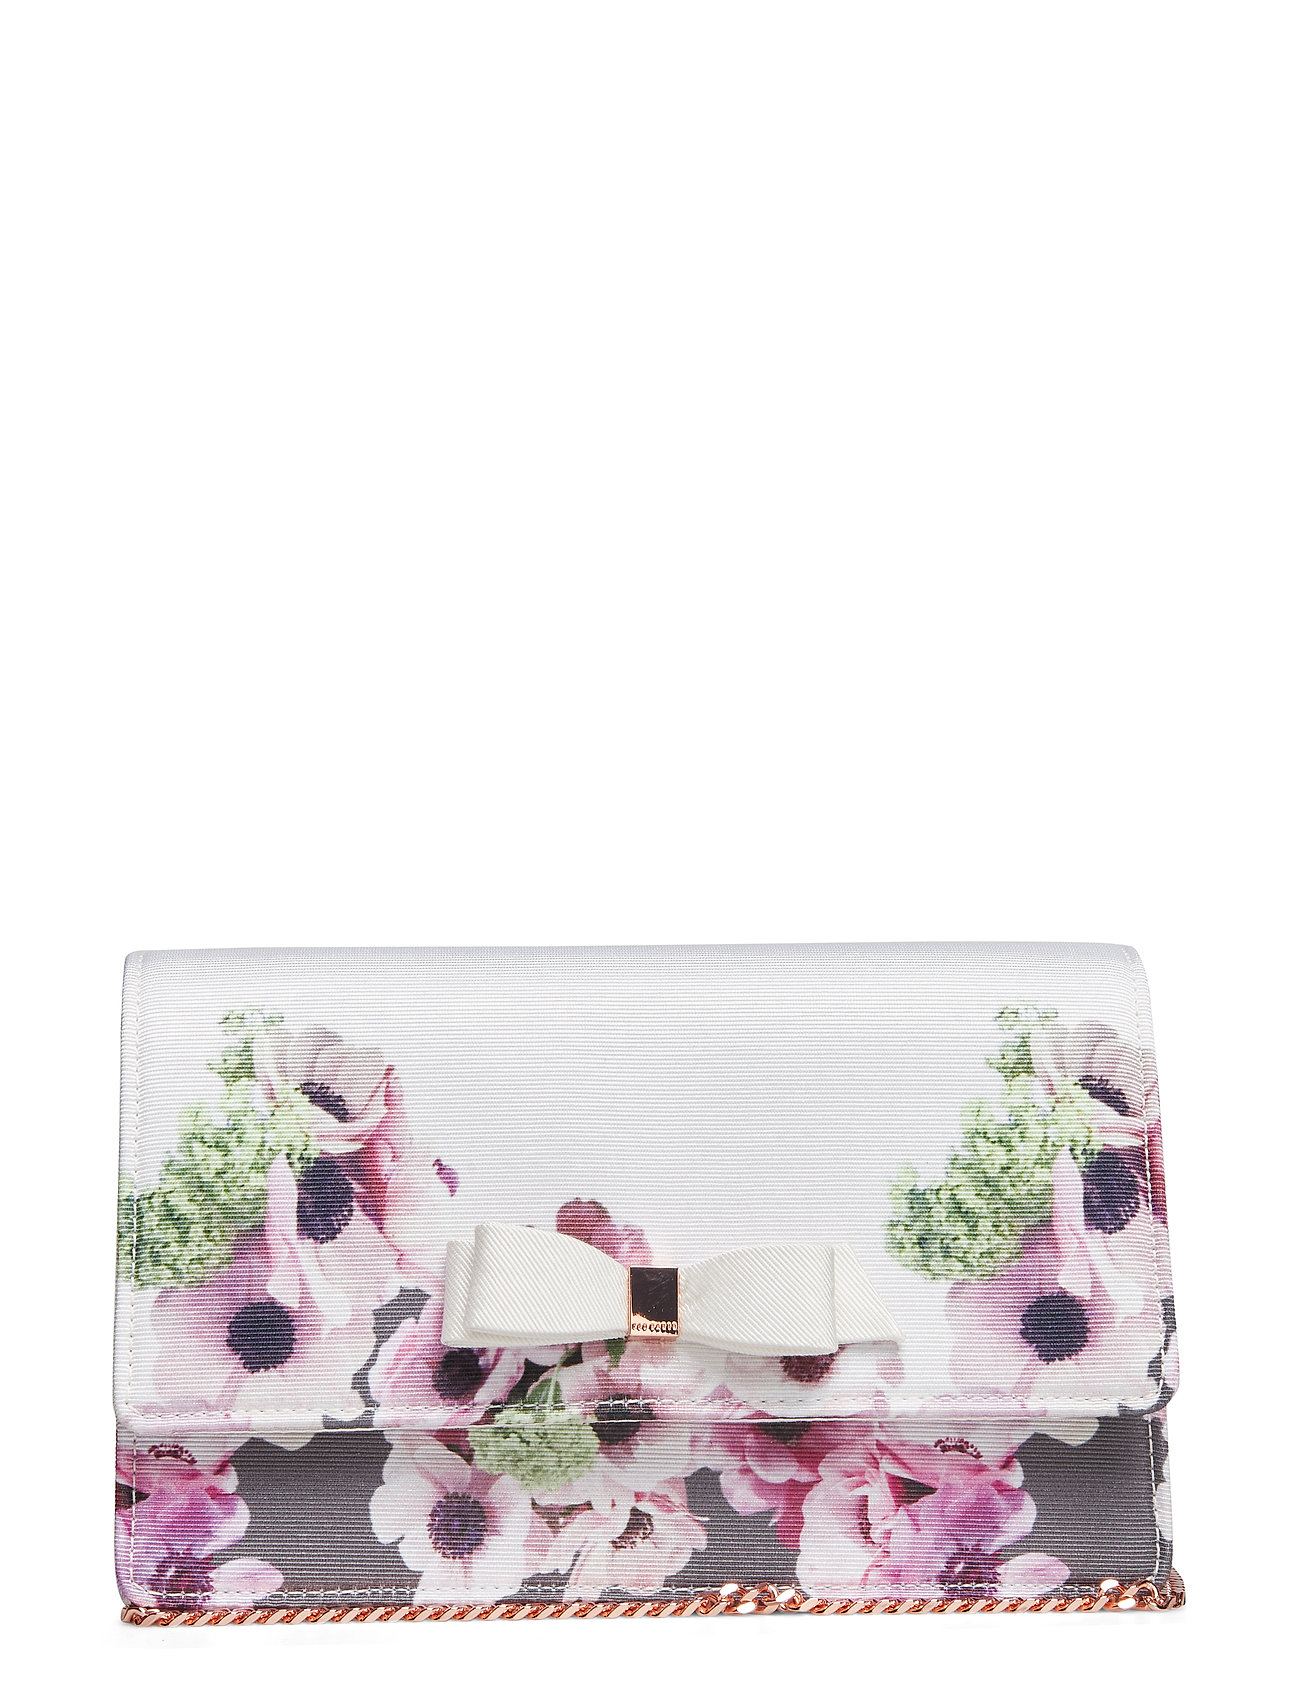 TED BAKER Amiya Bags Small Shoulder Bags/crossbody Bags Pink TED BAKER